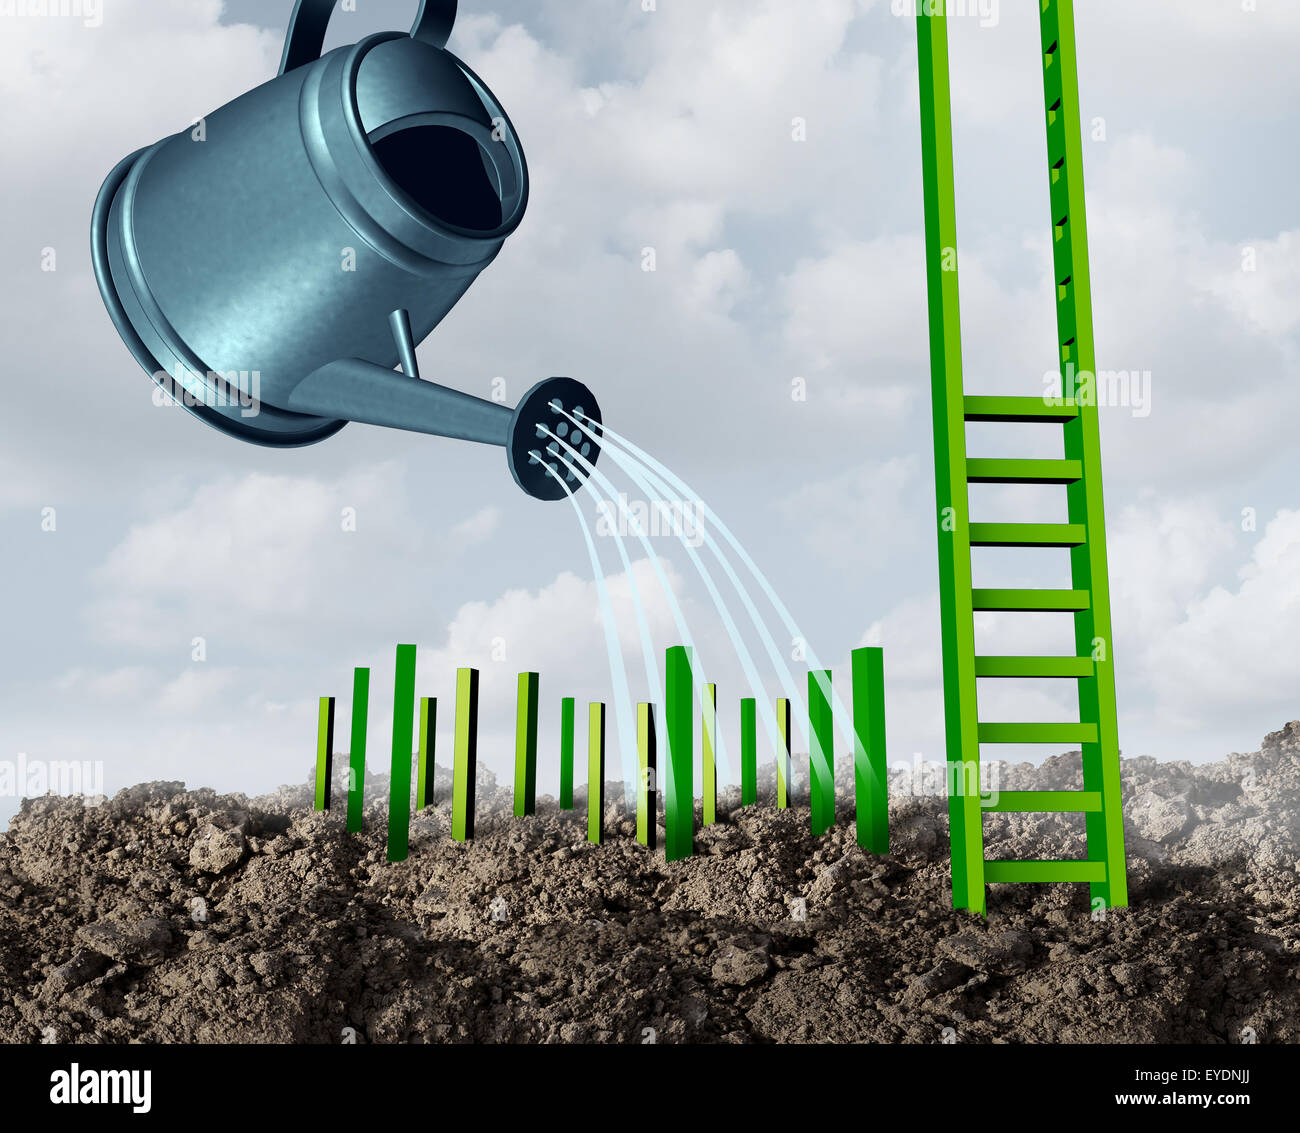 Success development growth concept as a watering can feeding water to growing green step pegs destined to complete - Stock Image